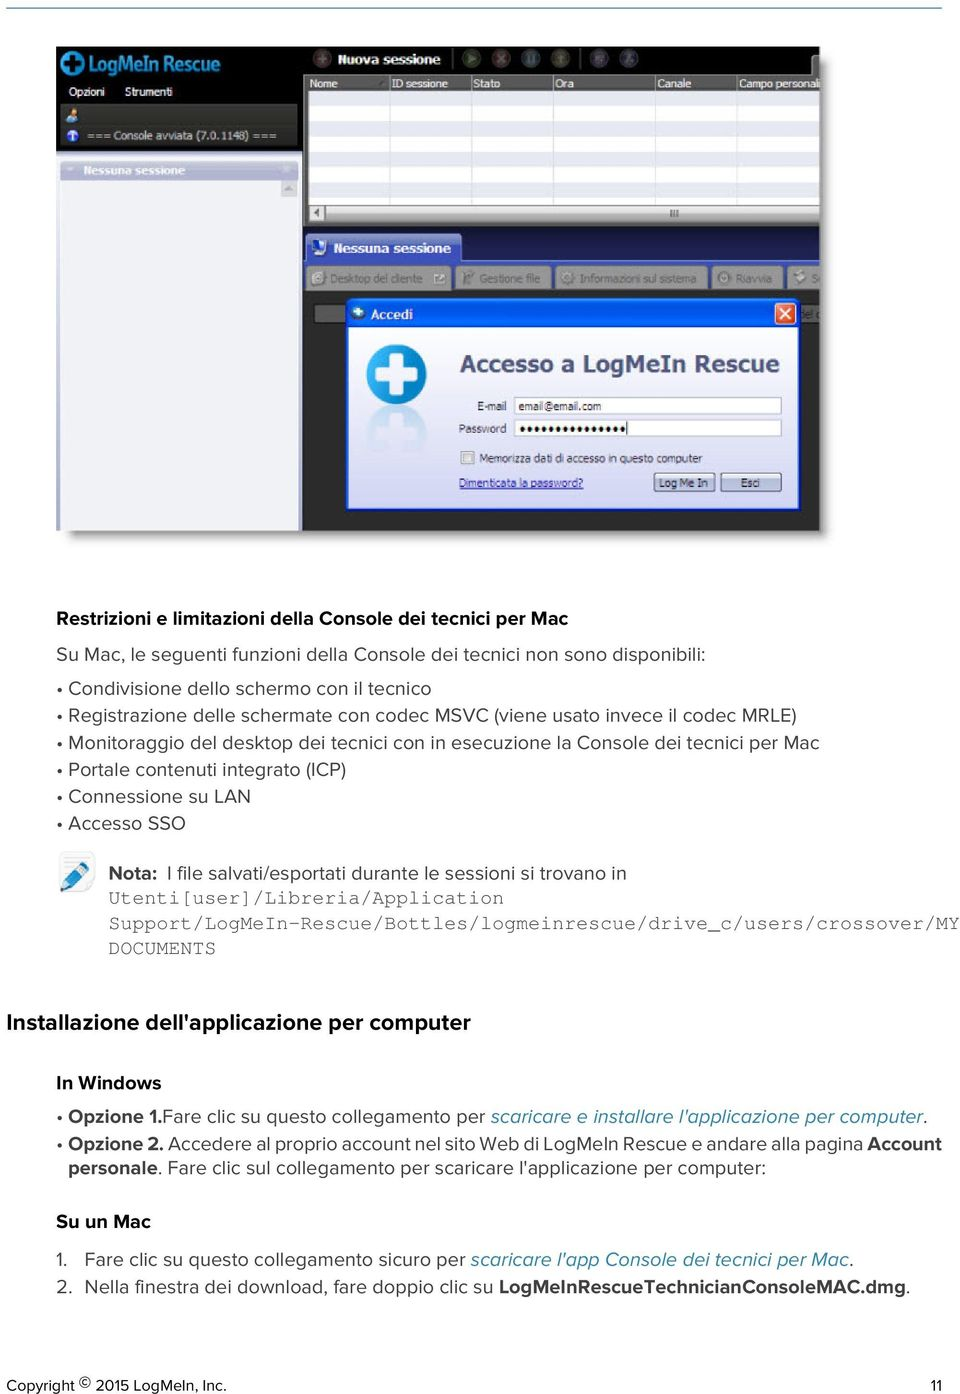 Accesso SSO Nota: I file salvati/esportati durante le sessioni si trovano in Utenti[user]/Libreria/Application Support/LogMeIn-Rescue/Bottles/logmeinrescue/drive_c/users/crossover/MY DOCUMENTS